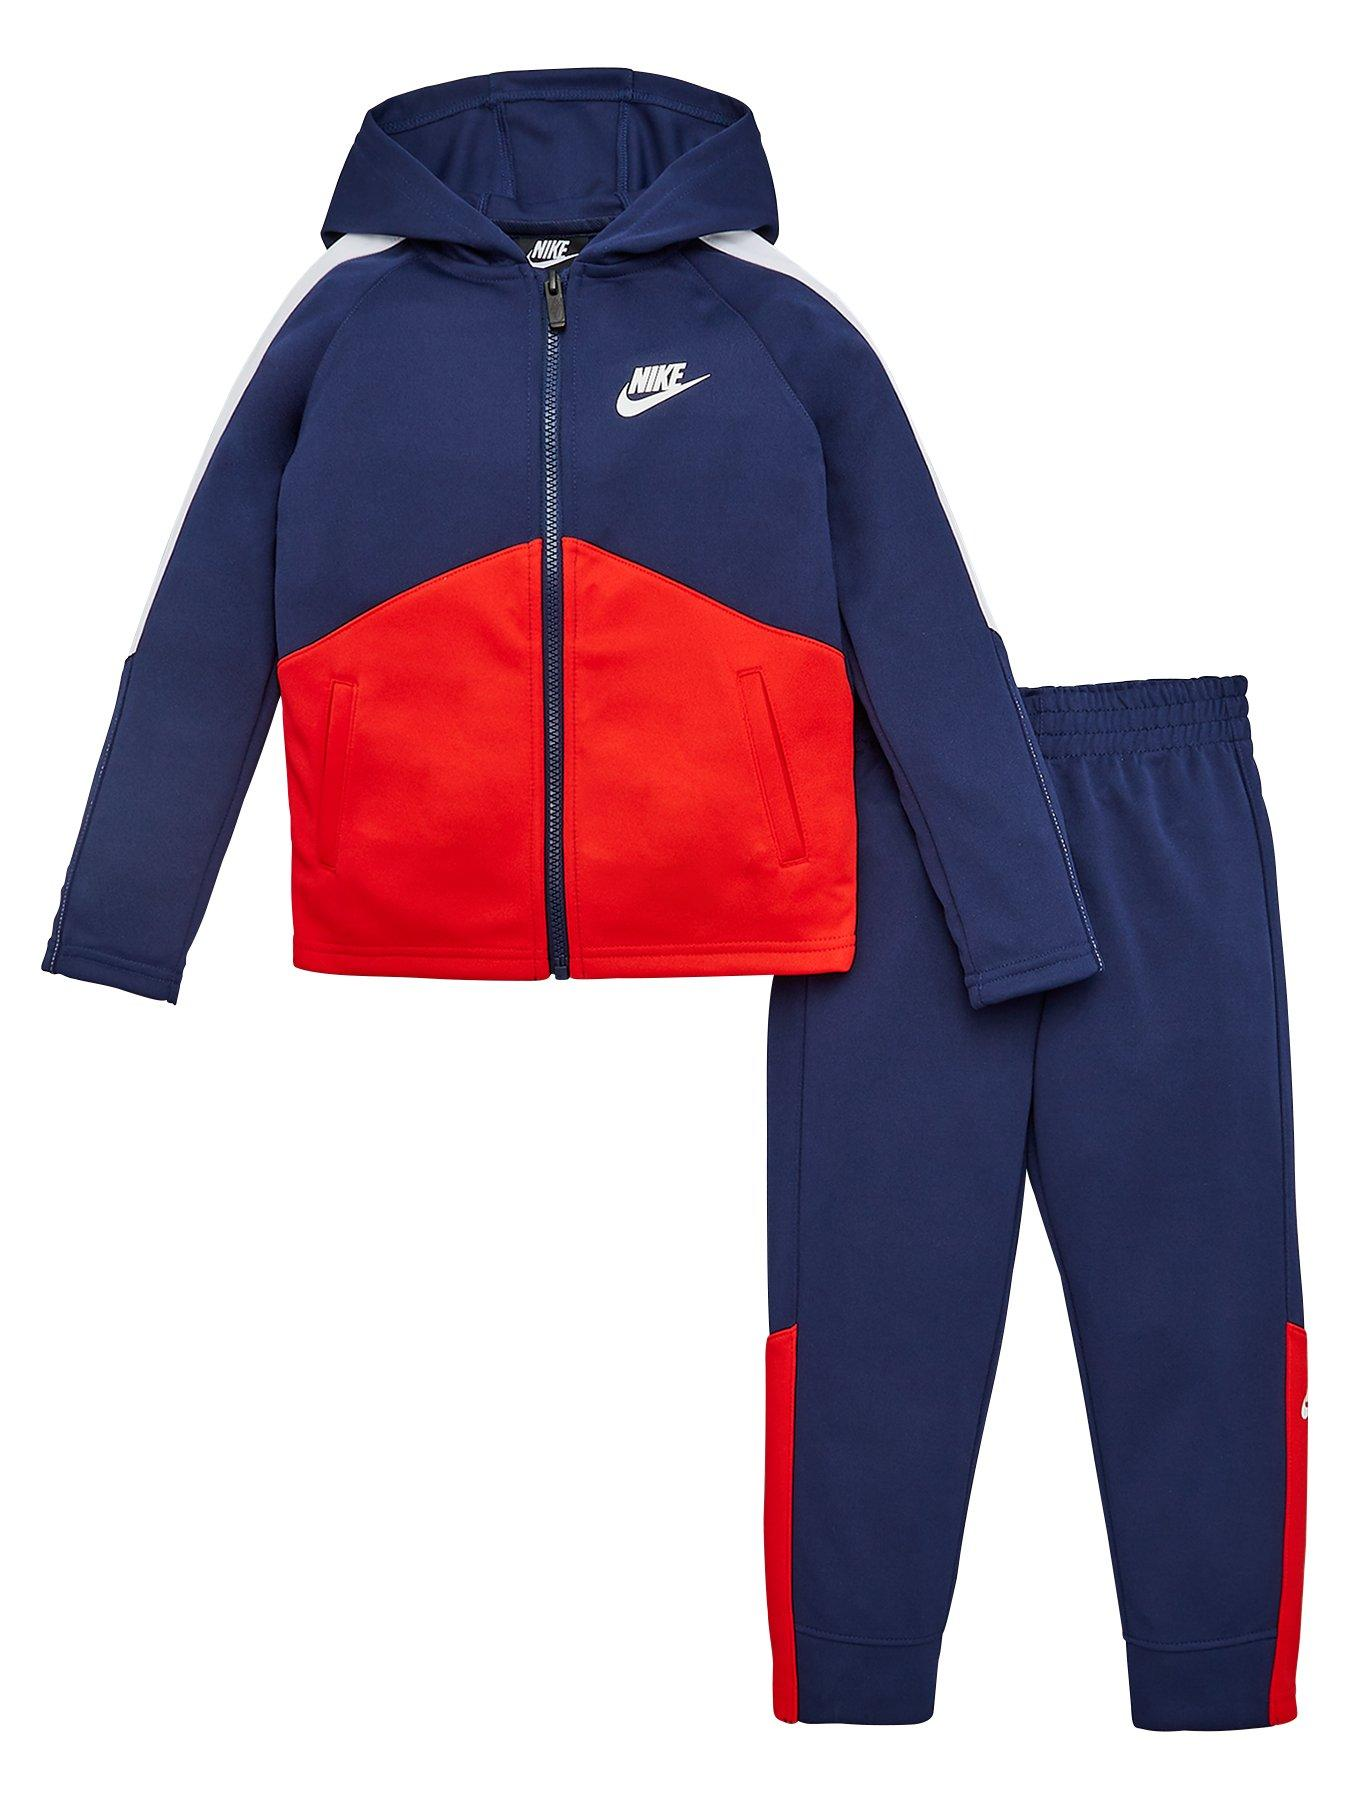 Details about Nike Boys Red Plain Hoodie Age 12 13